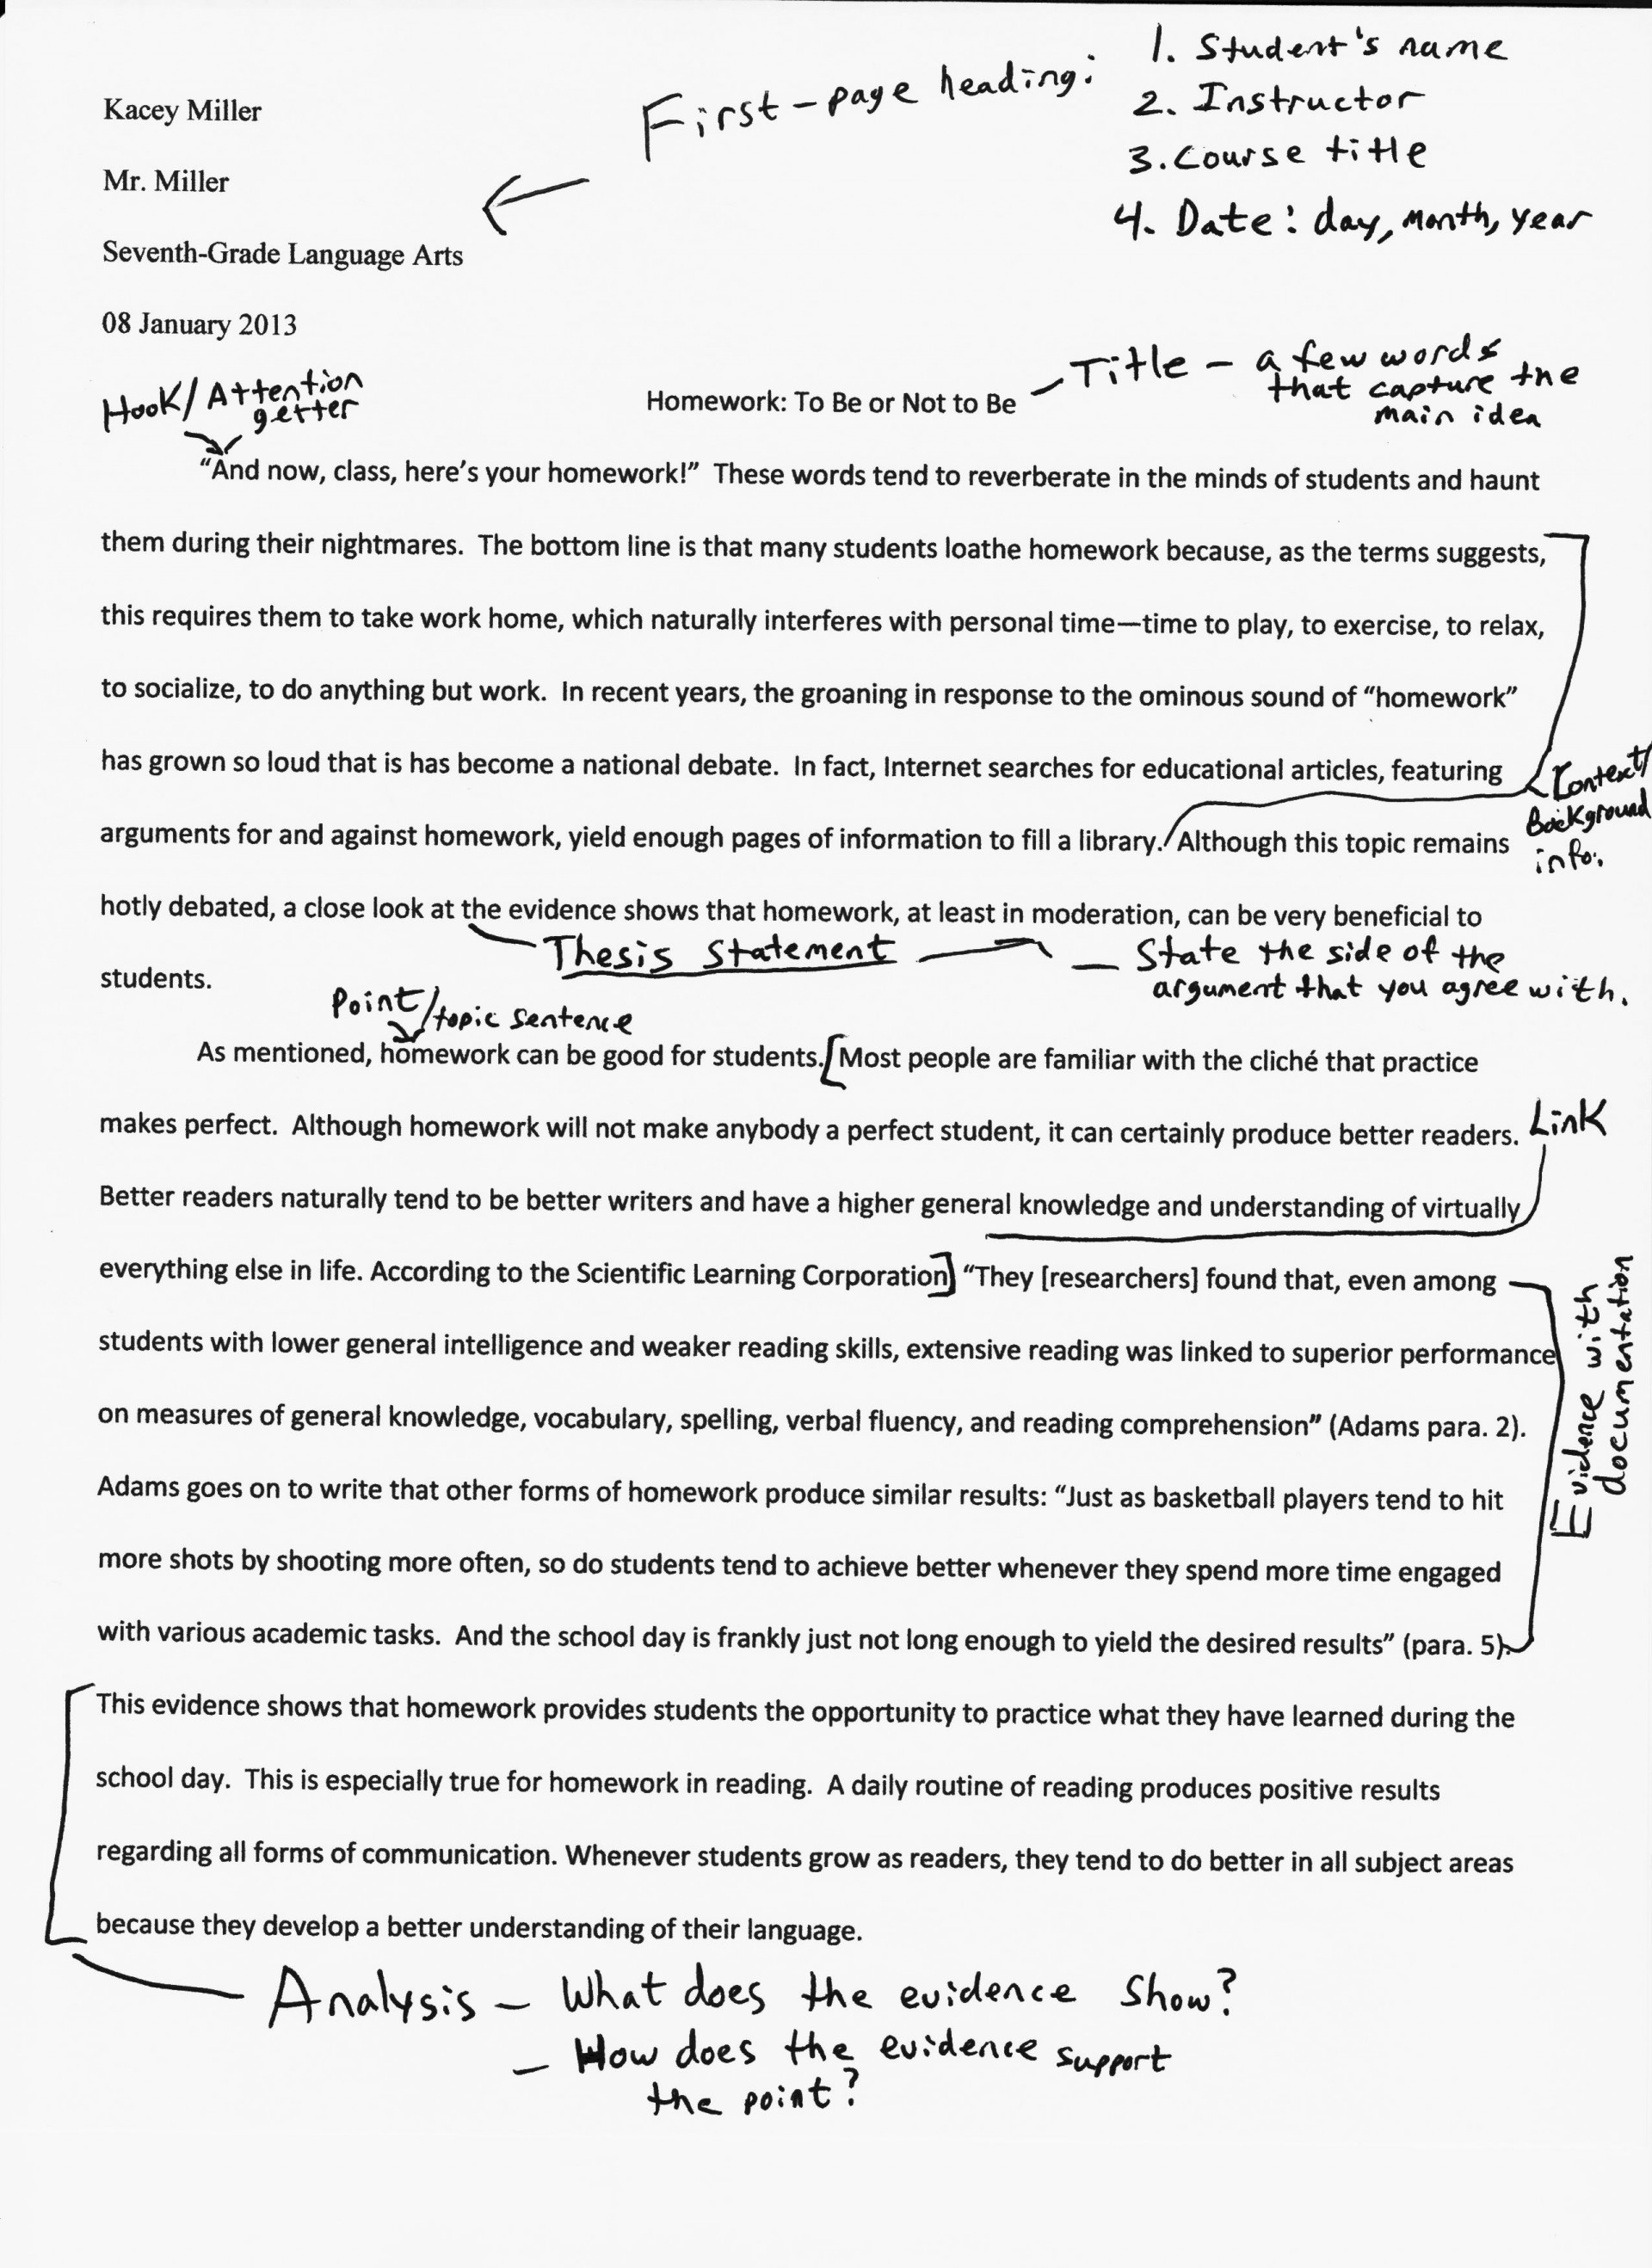 010 Argumentative Essay On Death Penalty Mentor20argument20essay20page20120001 Unbelievable Ideas Persuasive About In The Philippines Pro 1920